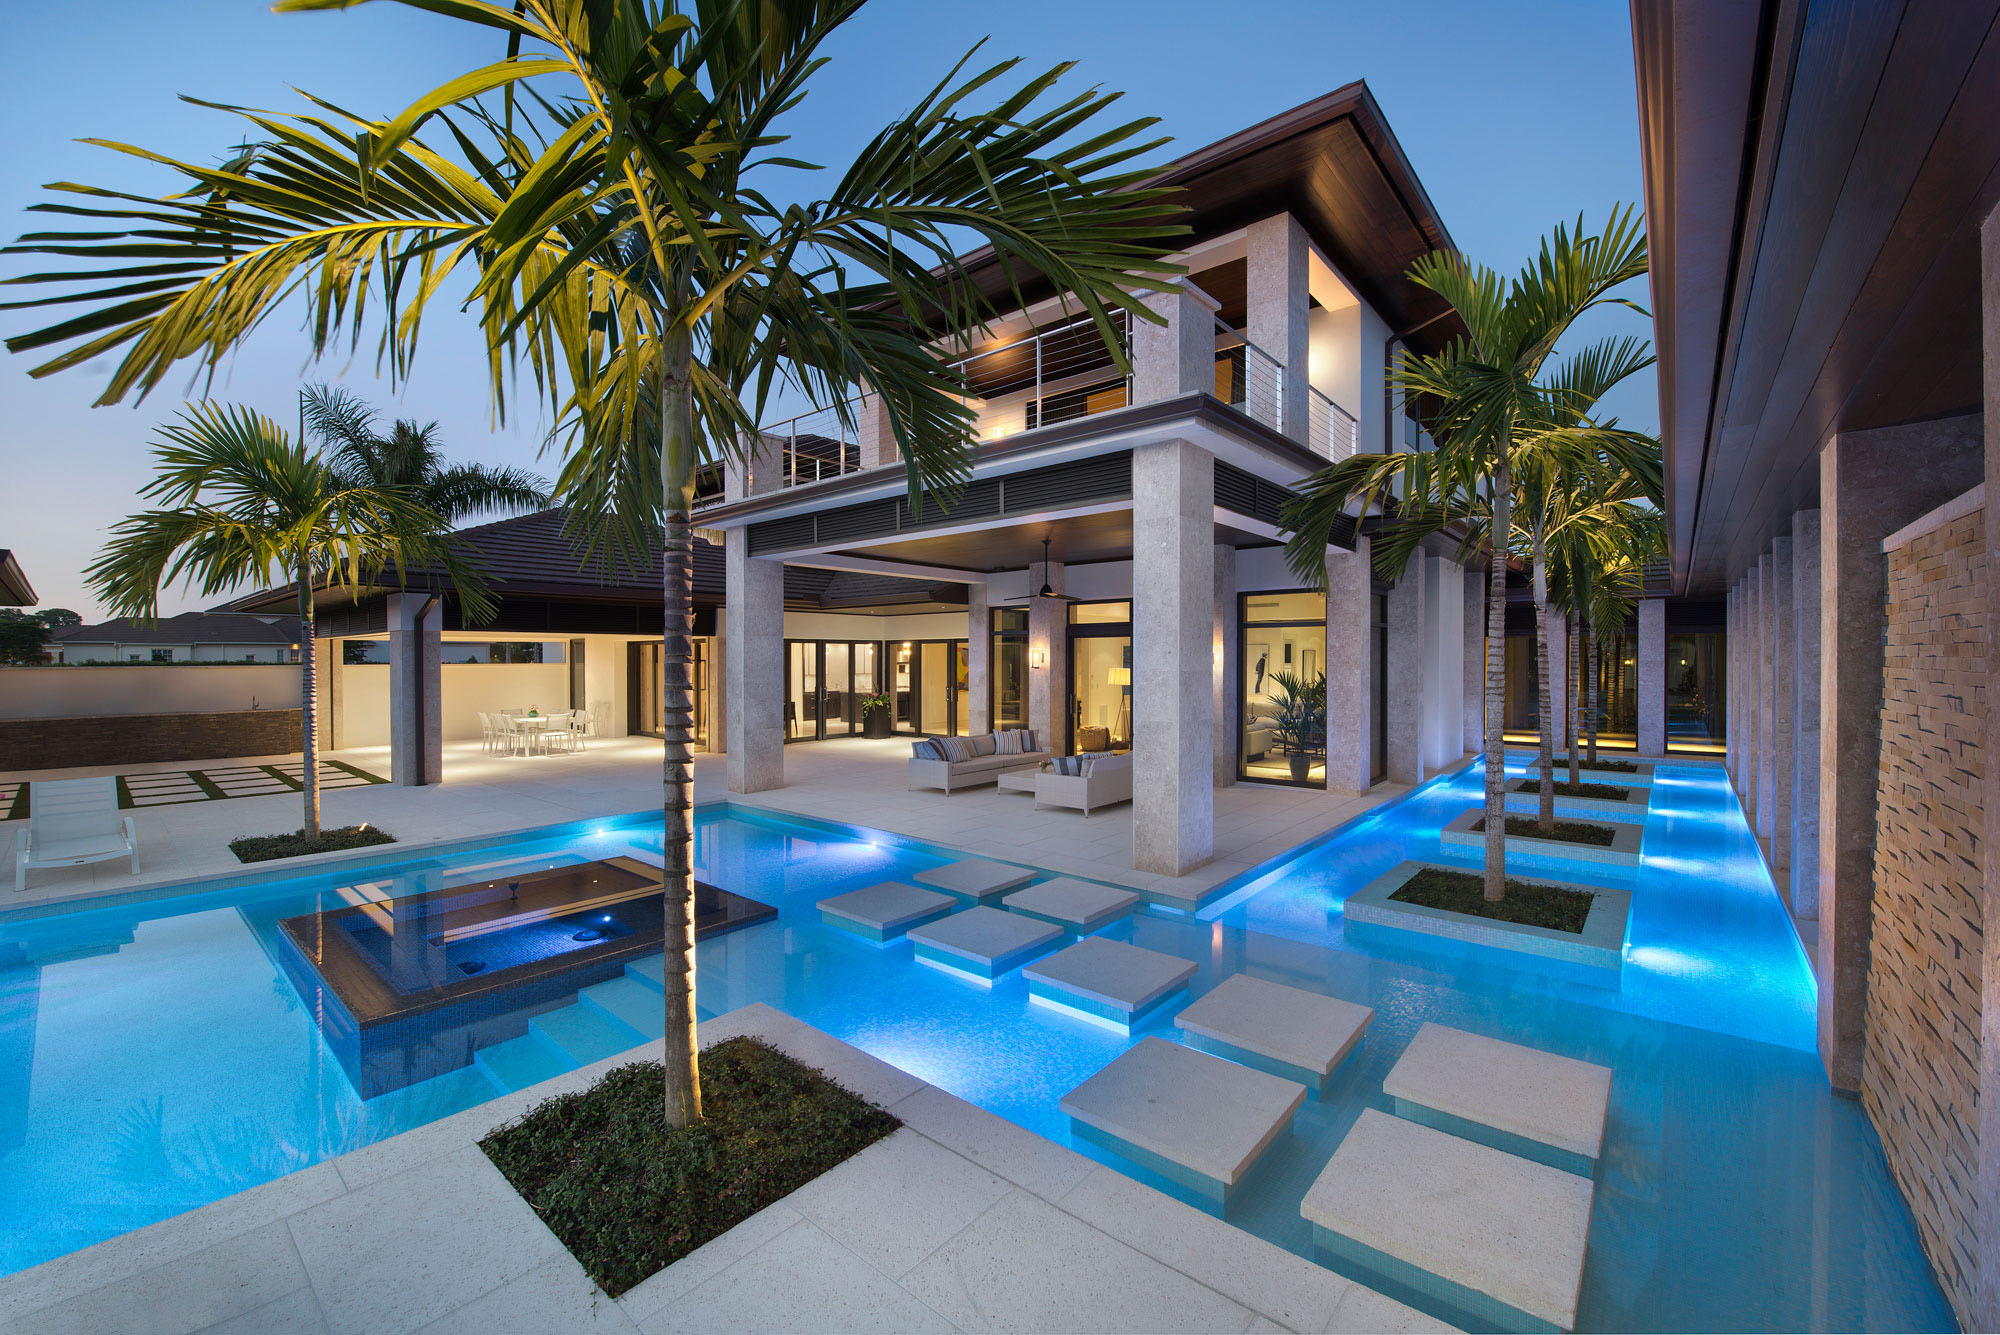 Custom dream home in florida with elegant swimming pool for Luxury home designs usa